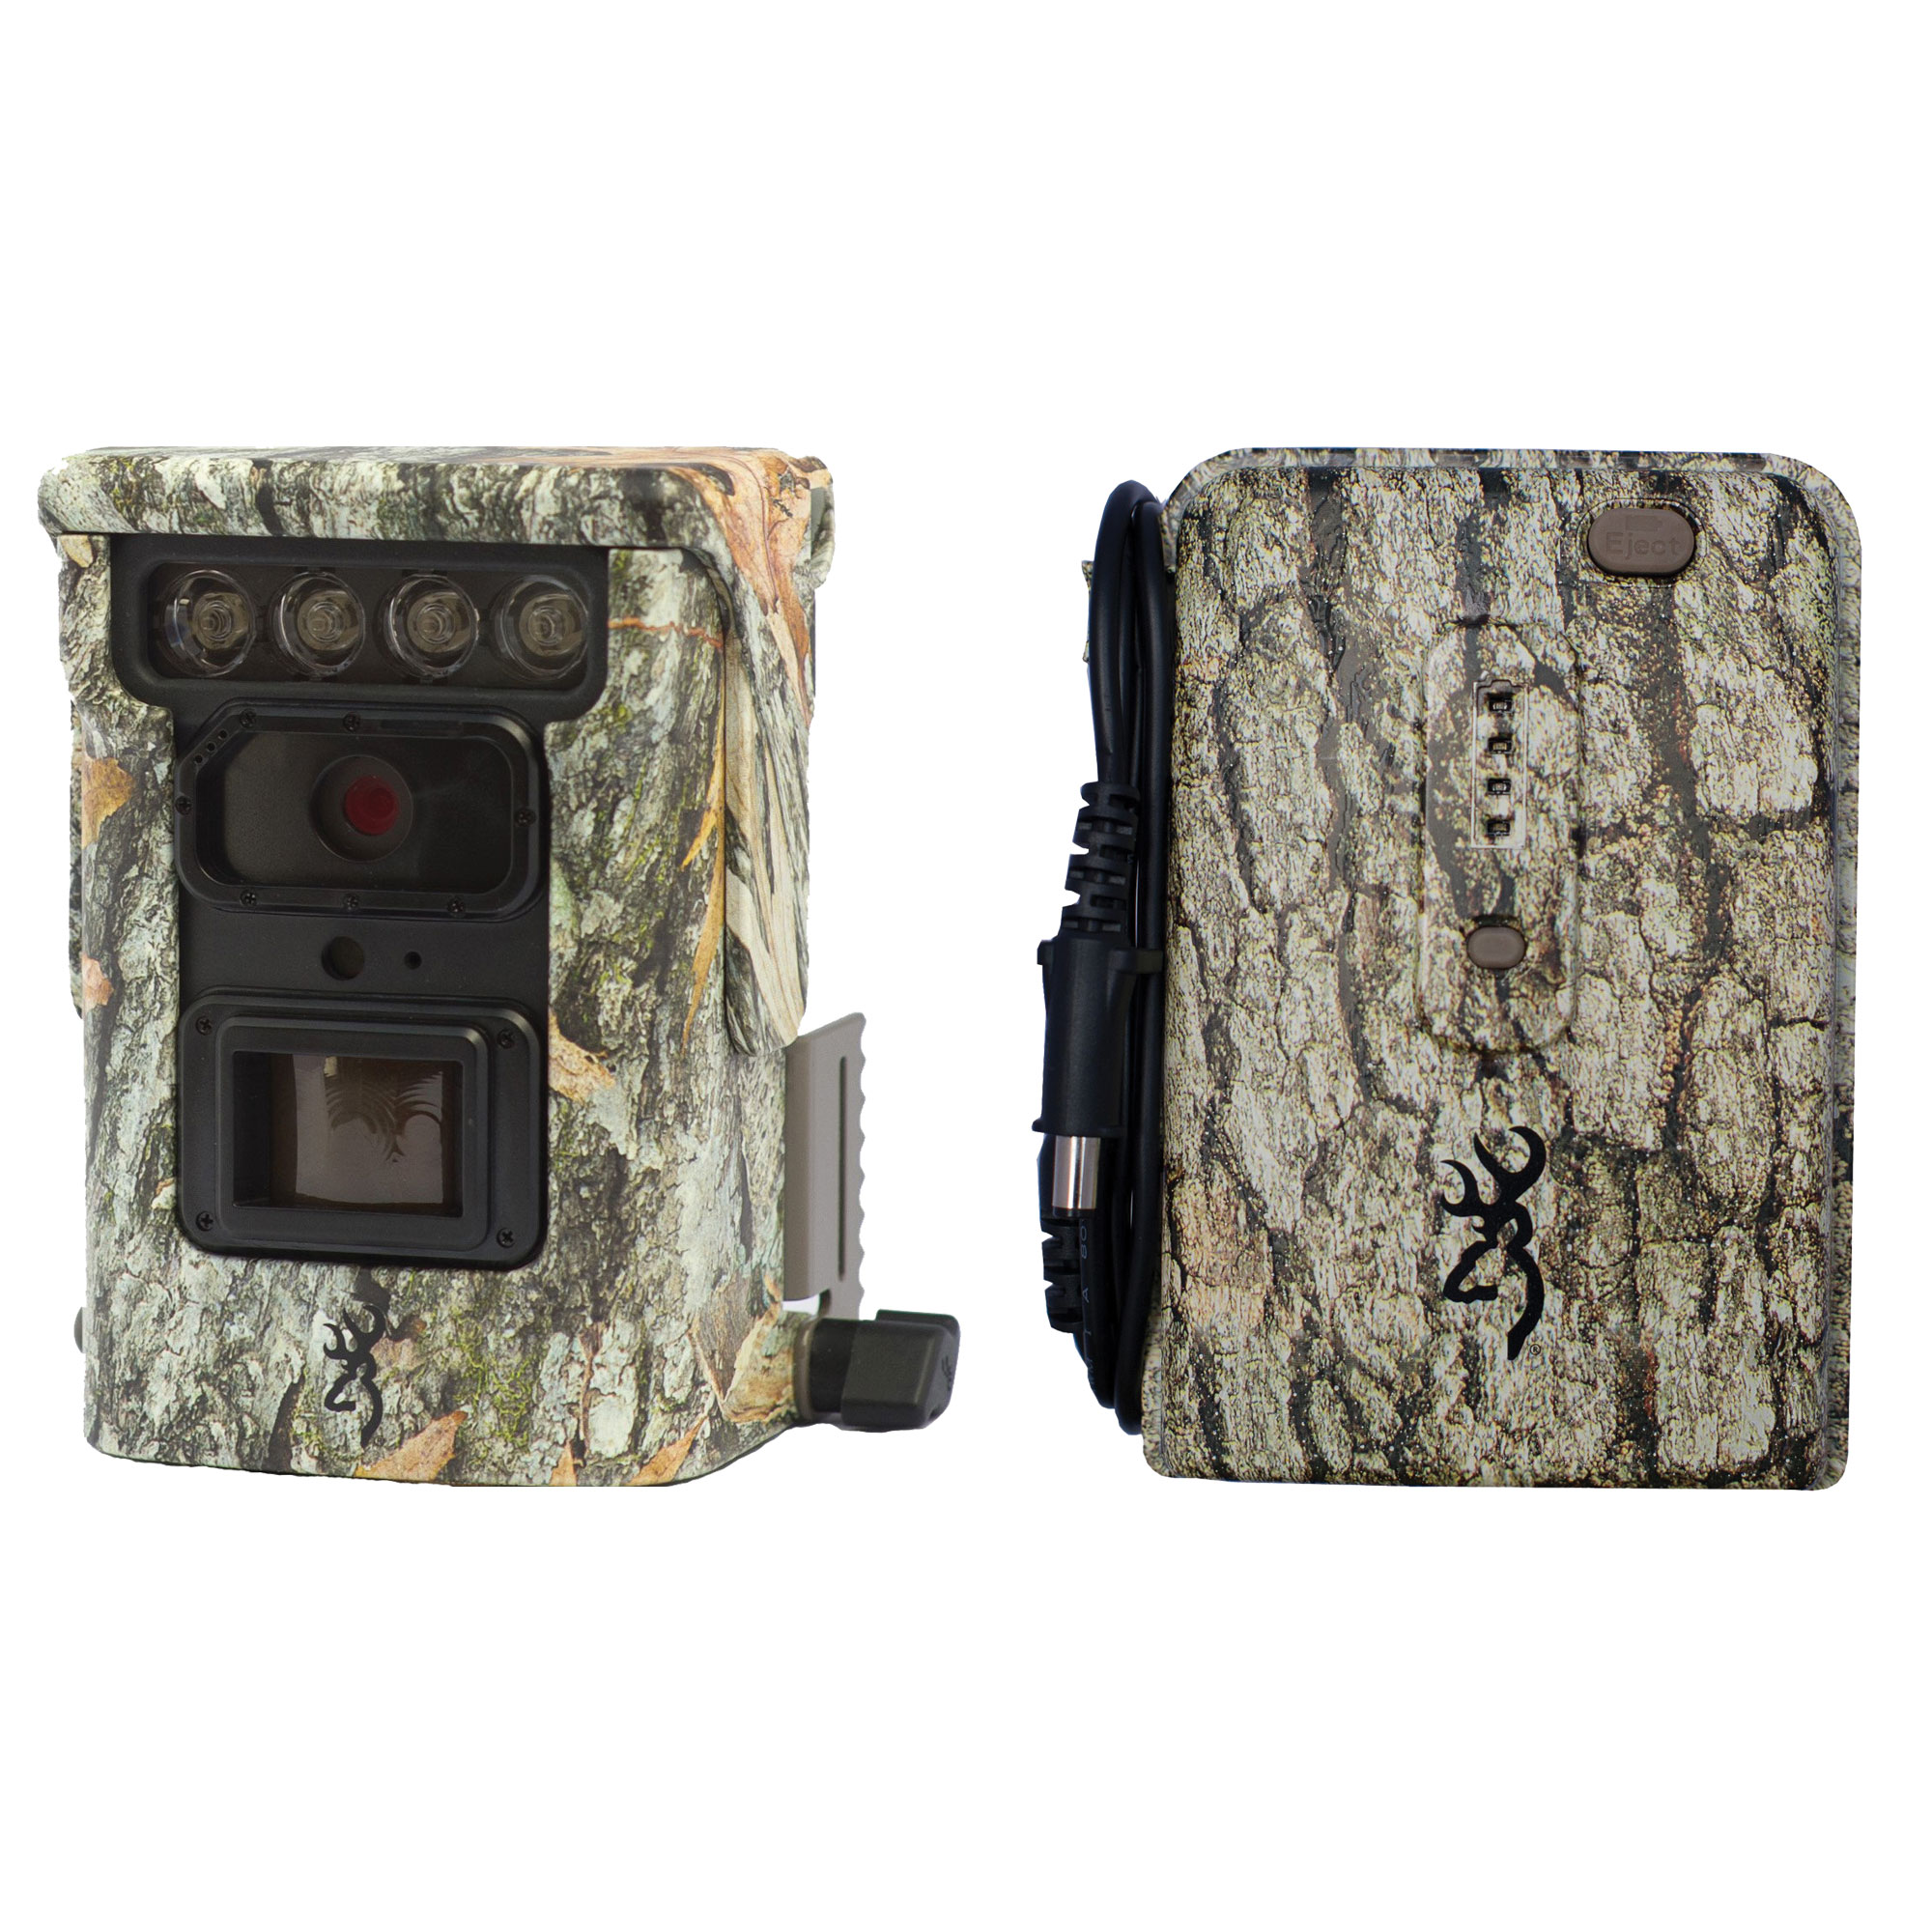 Browning Trail Cameras Defender 850 20MP Bluetooth Game Camera with Power Pack by Browning Trail Cameras